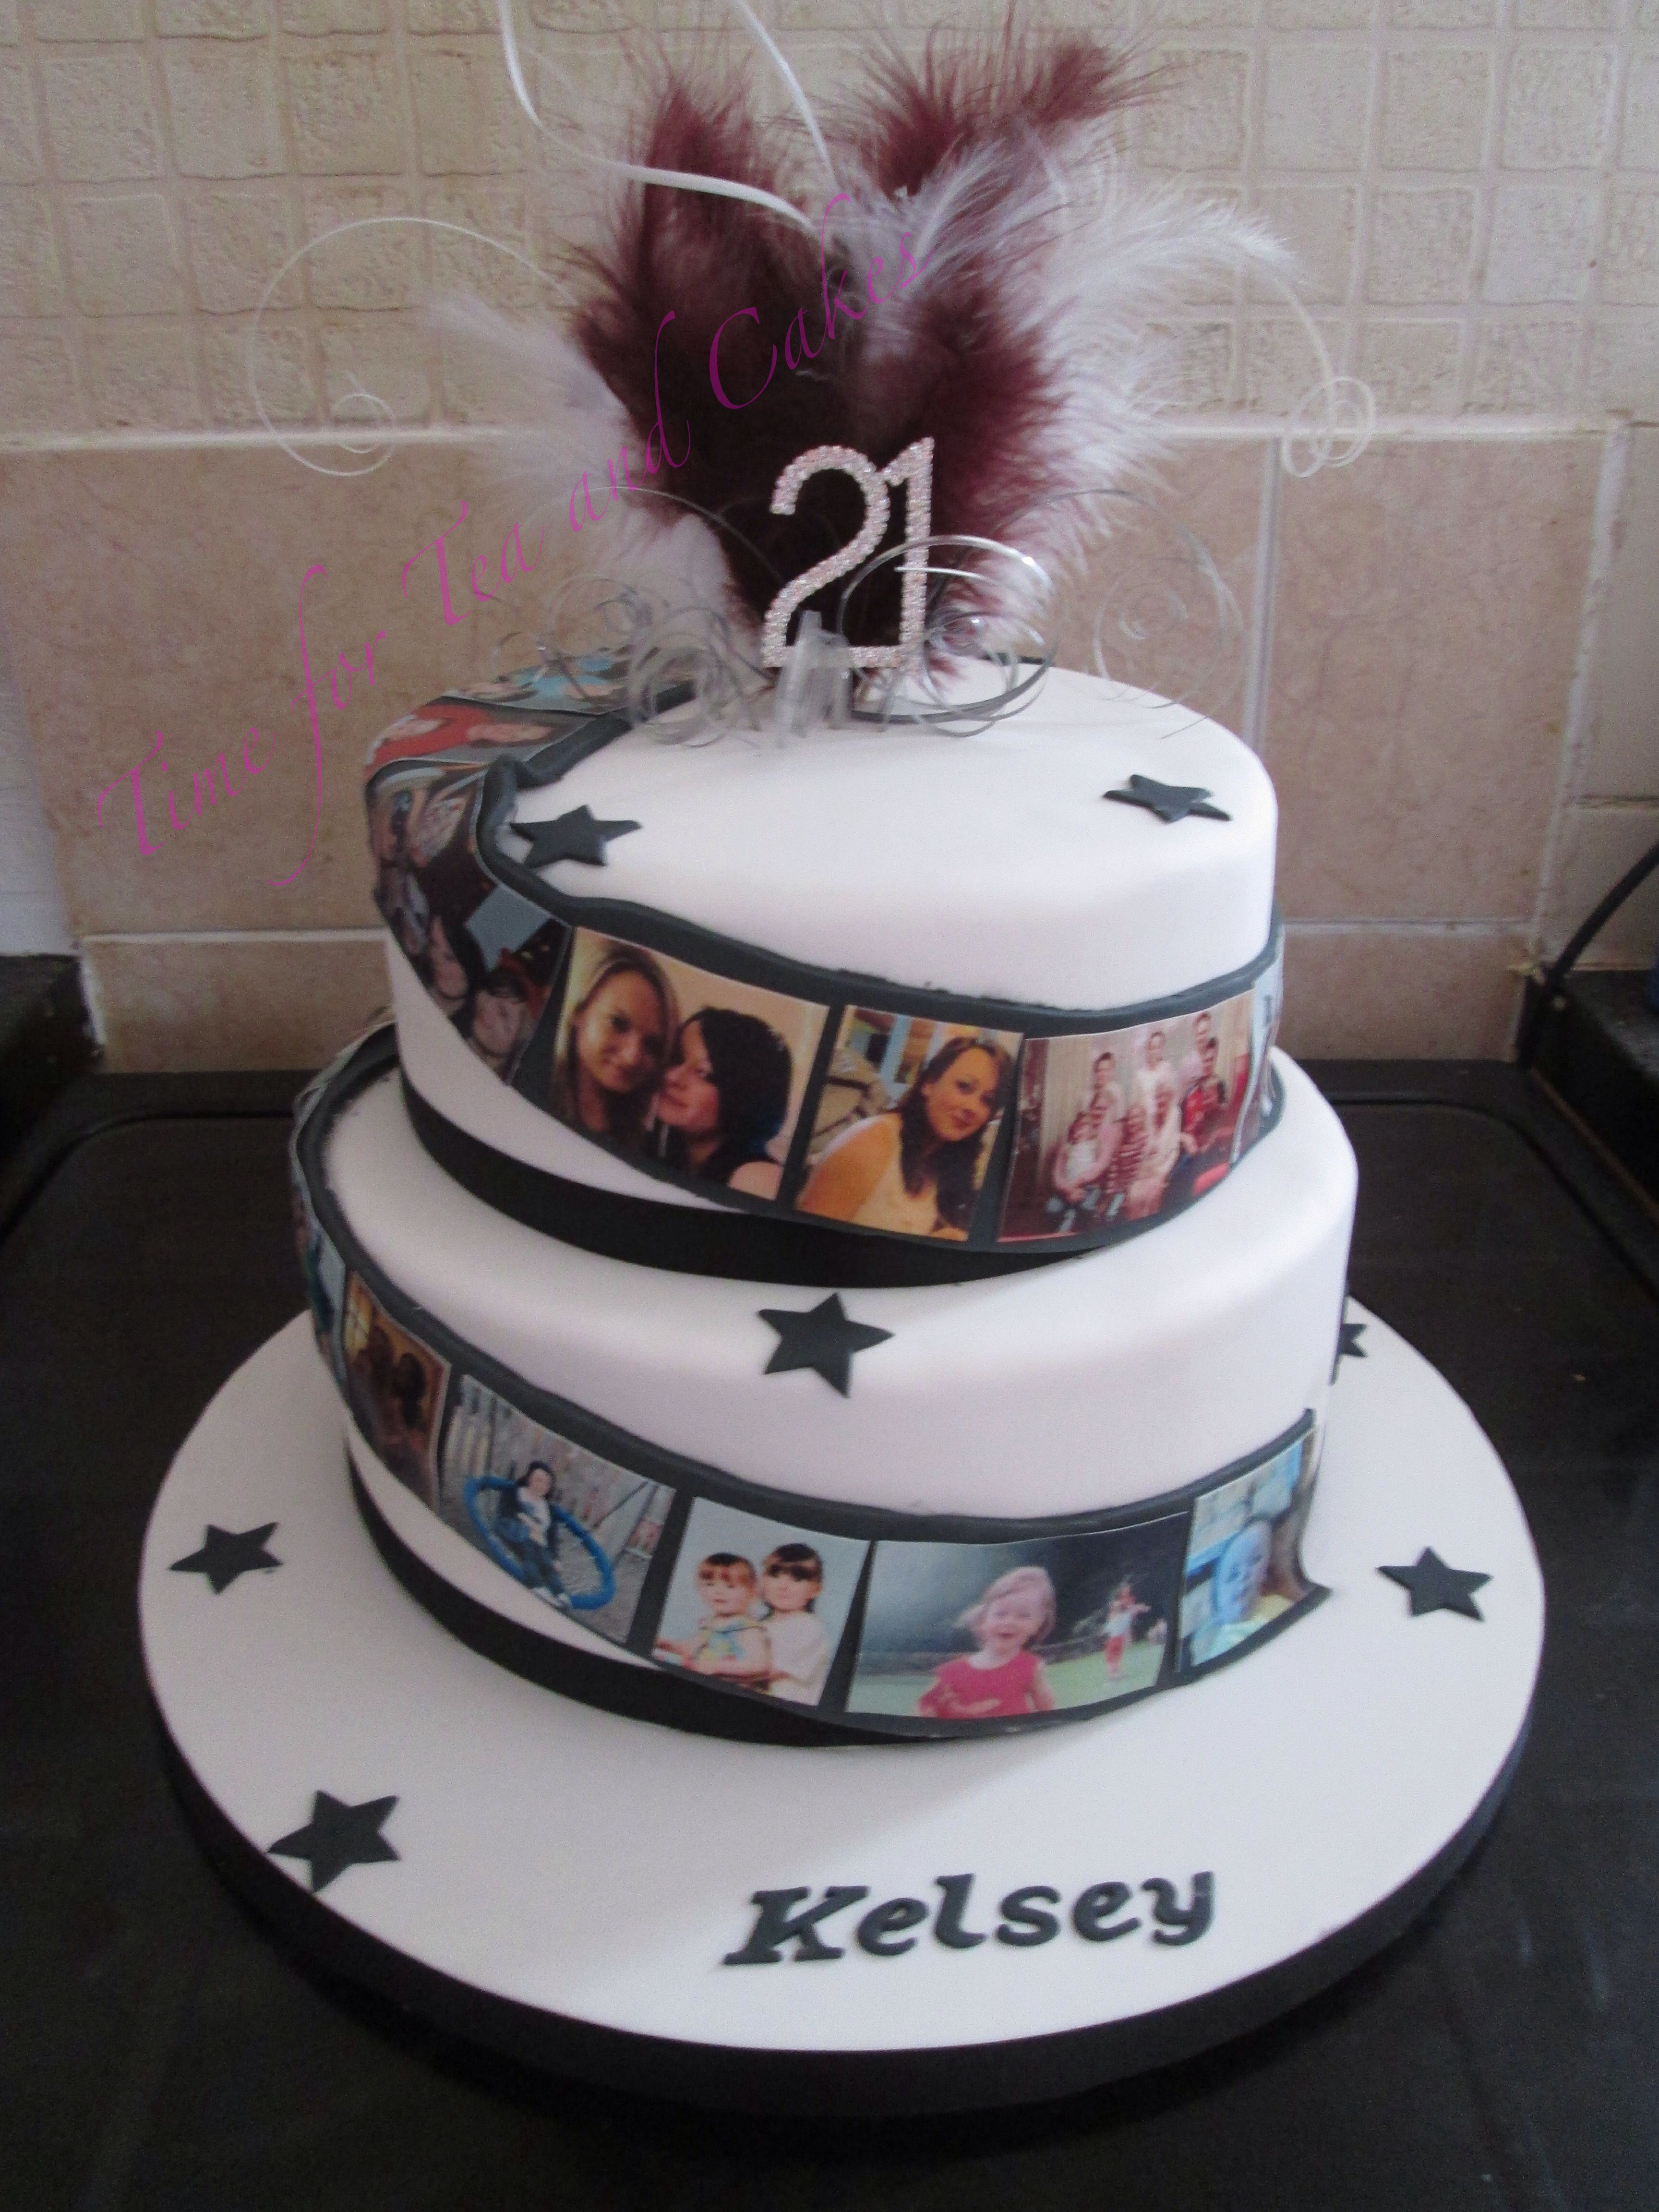 Photo Film Real Memory Cake For A St Birthday Celebration - Real birthday cake images